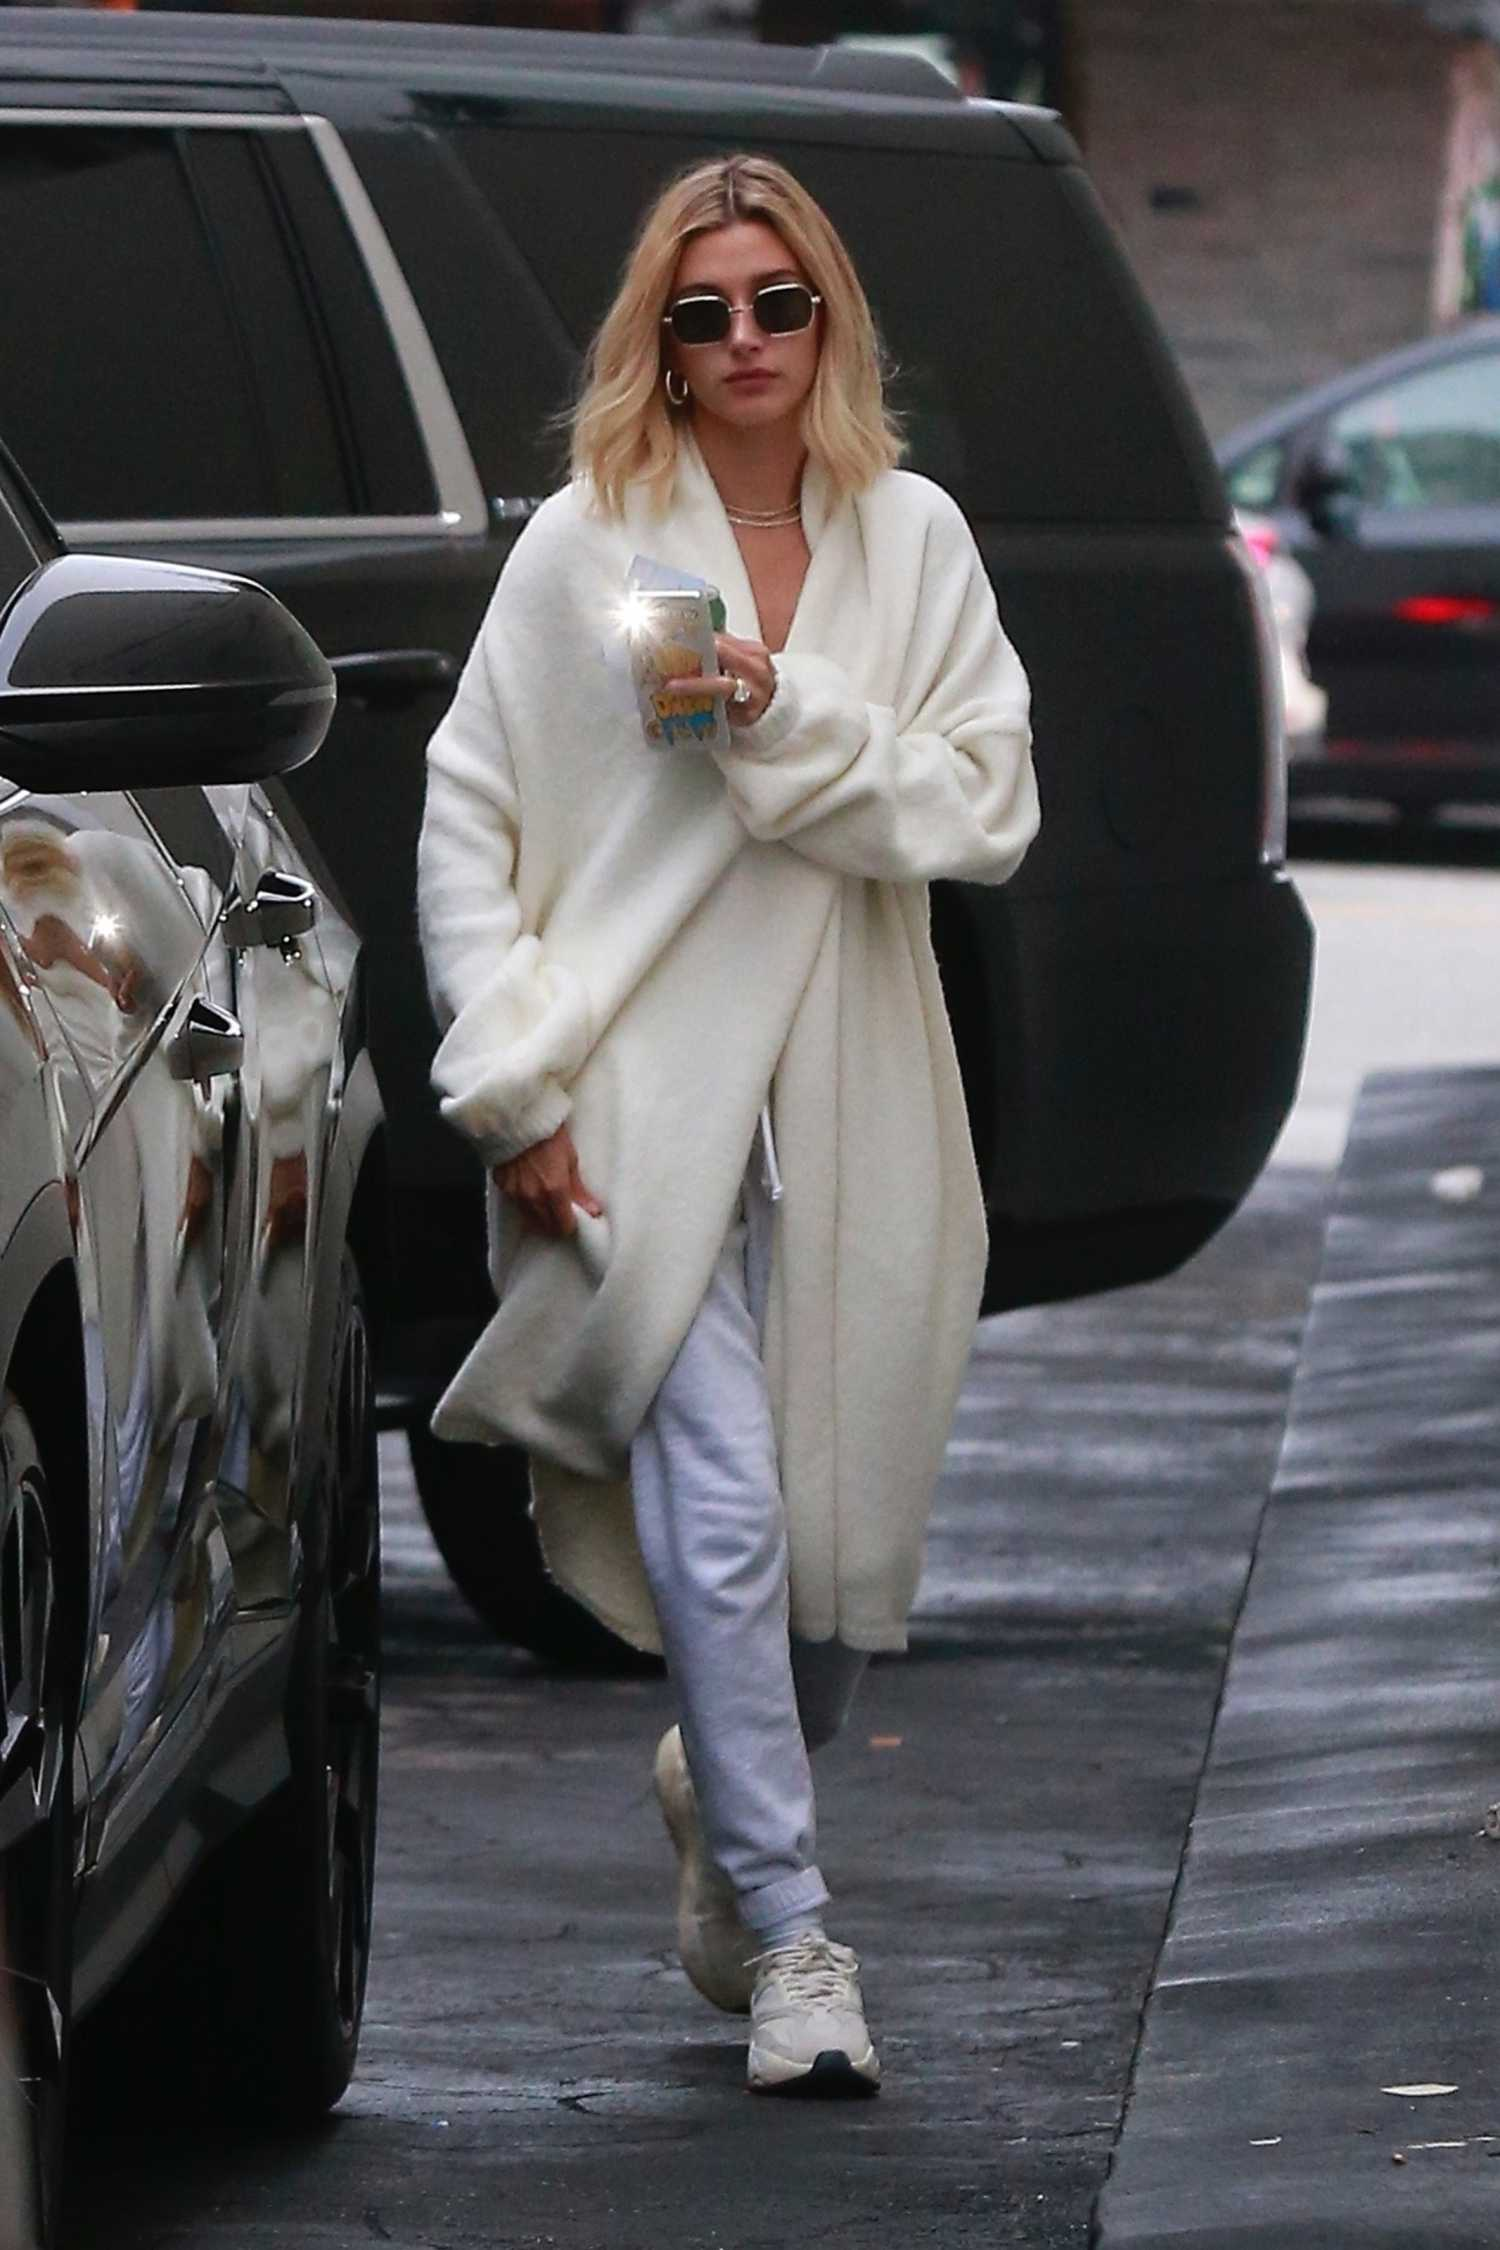 Hailey Baldwin in a White Cardigan Leaves a Dermatologist